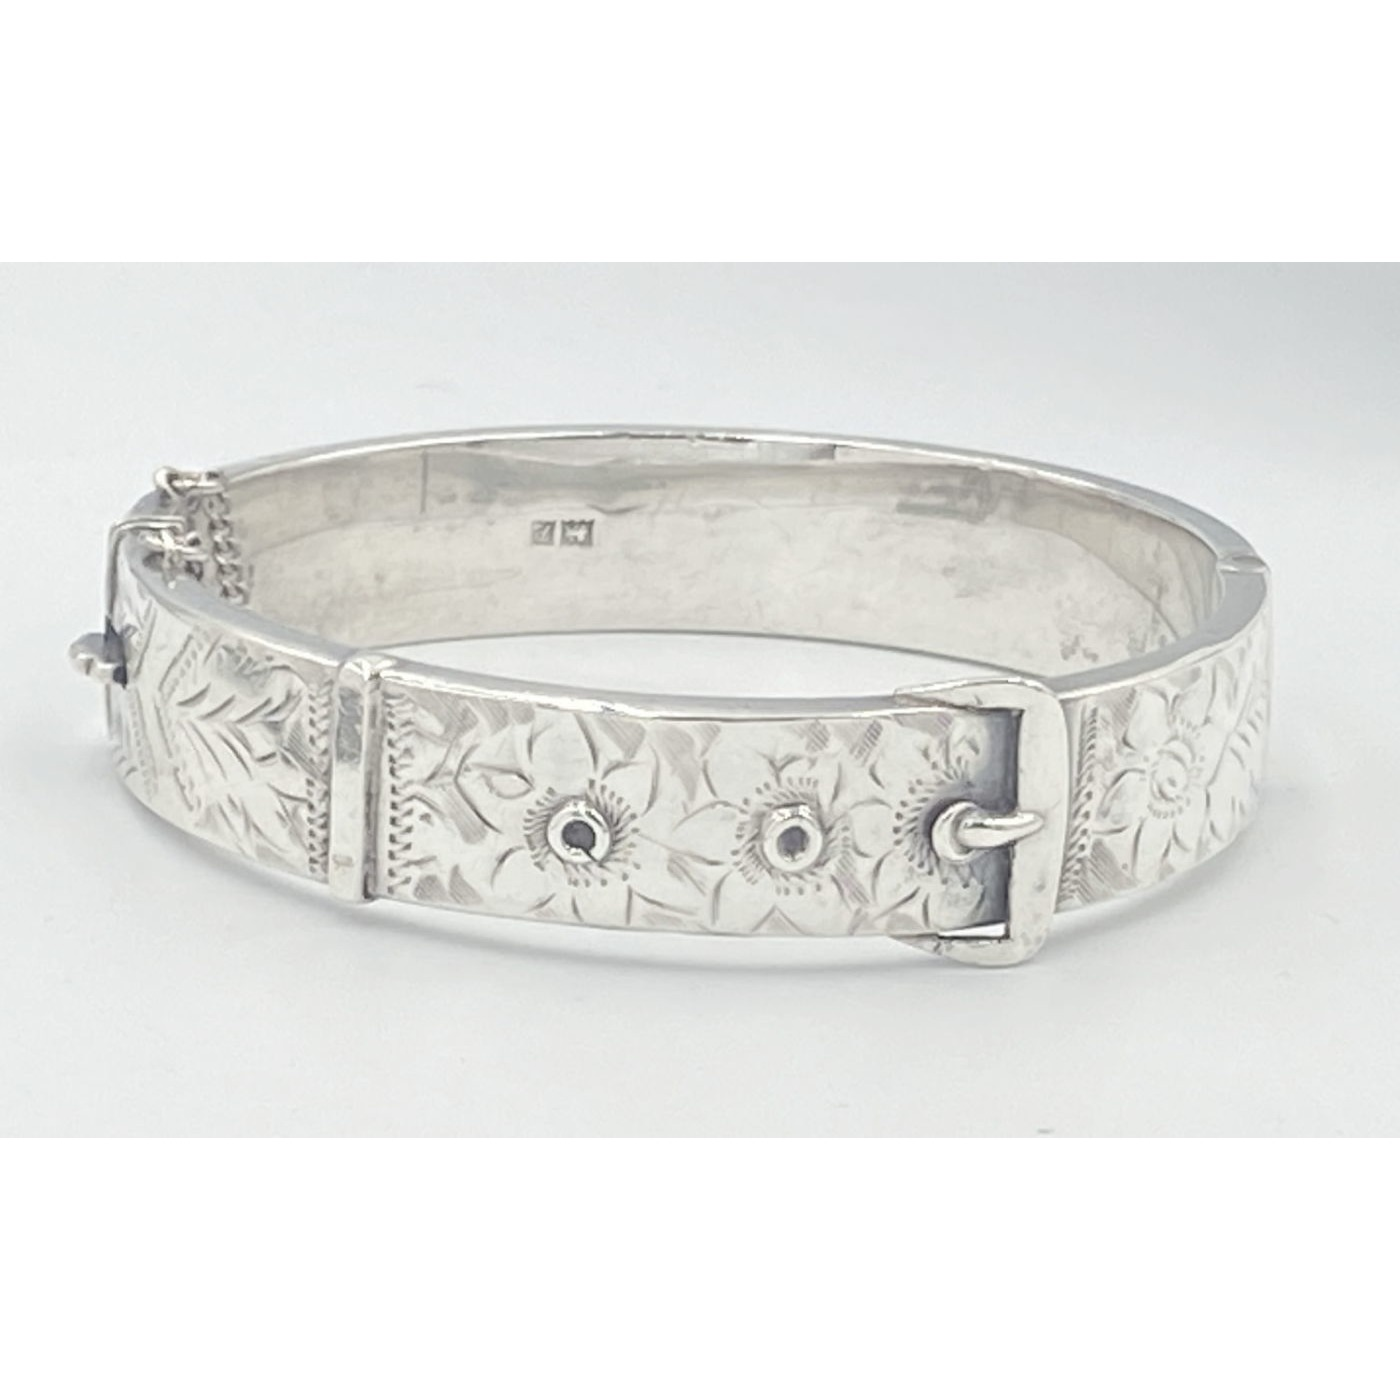 Excellent Smooth Sterling Silver English Buckle Bangle Bracelet